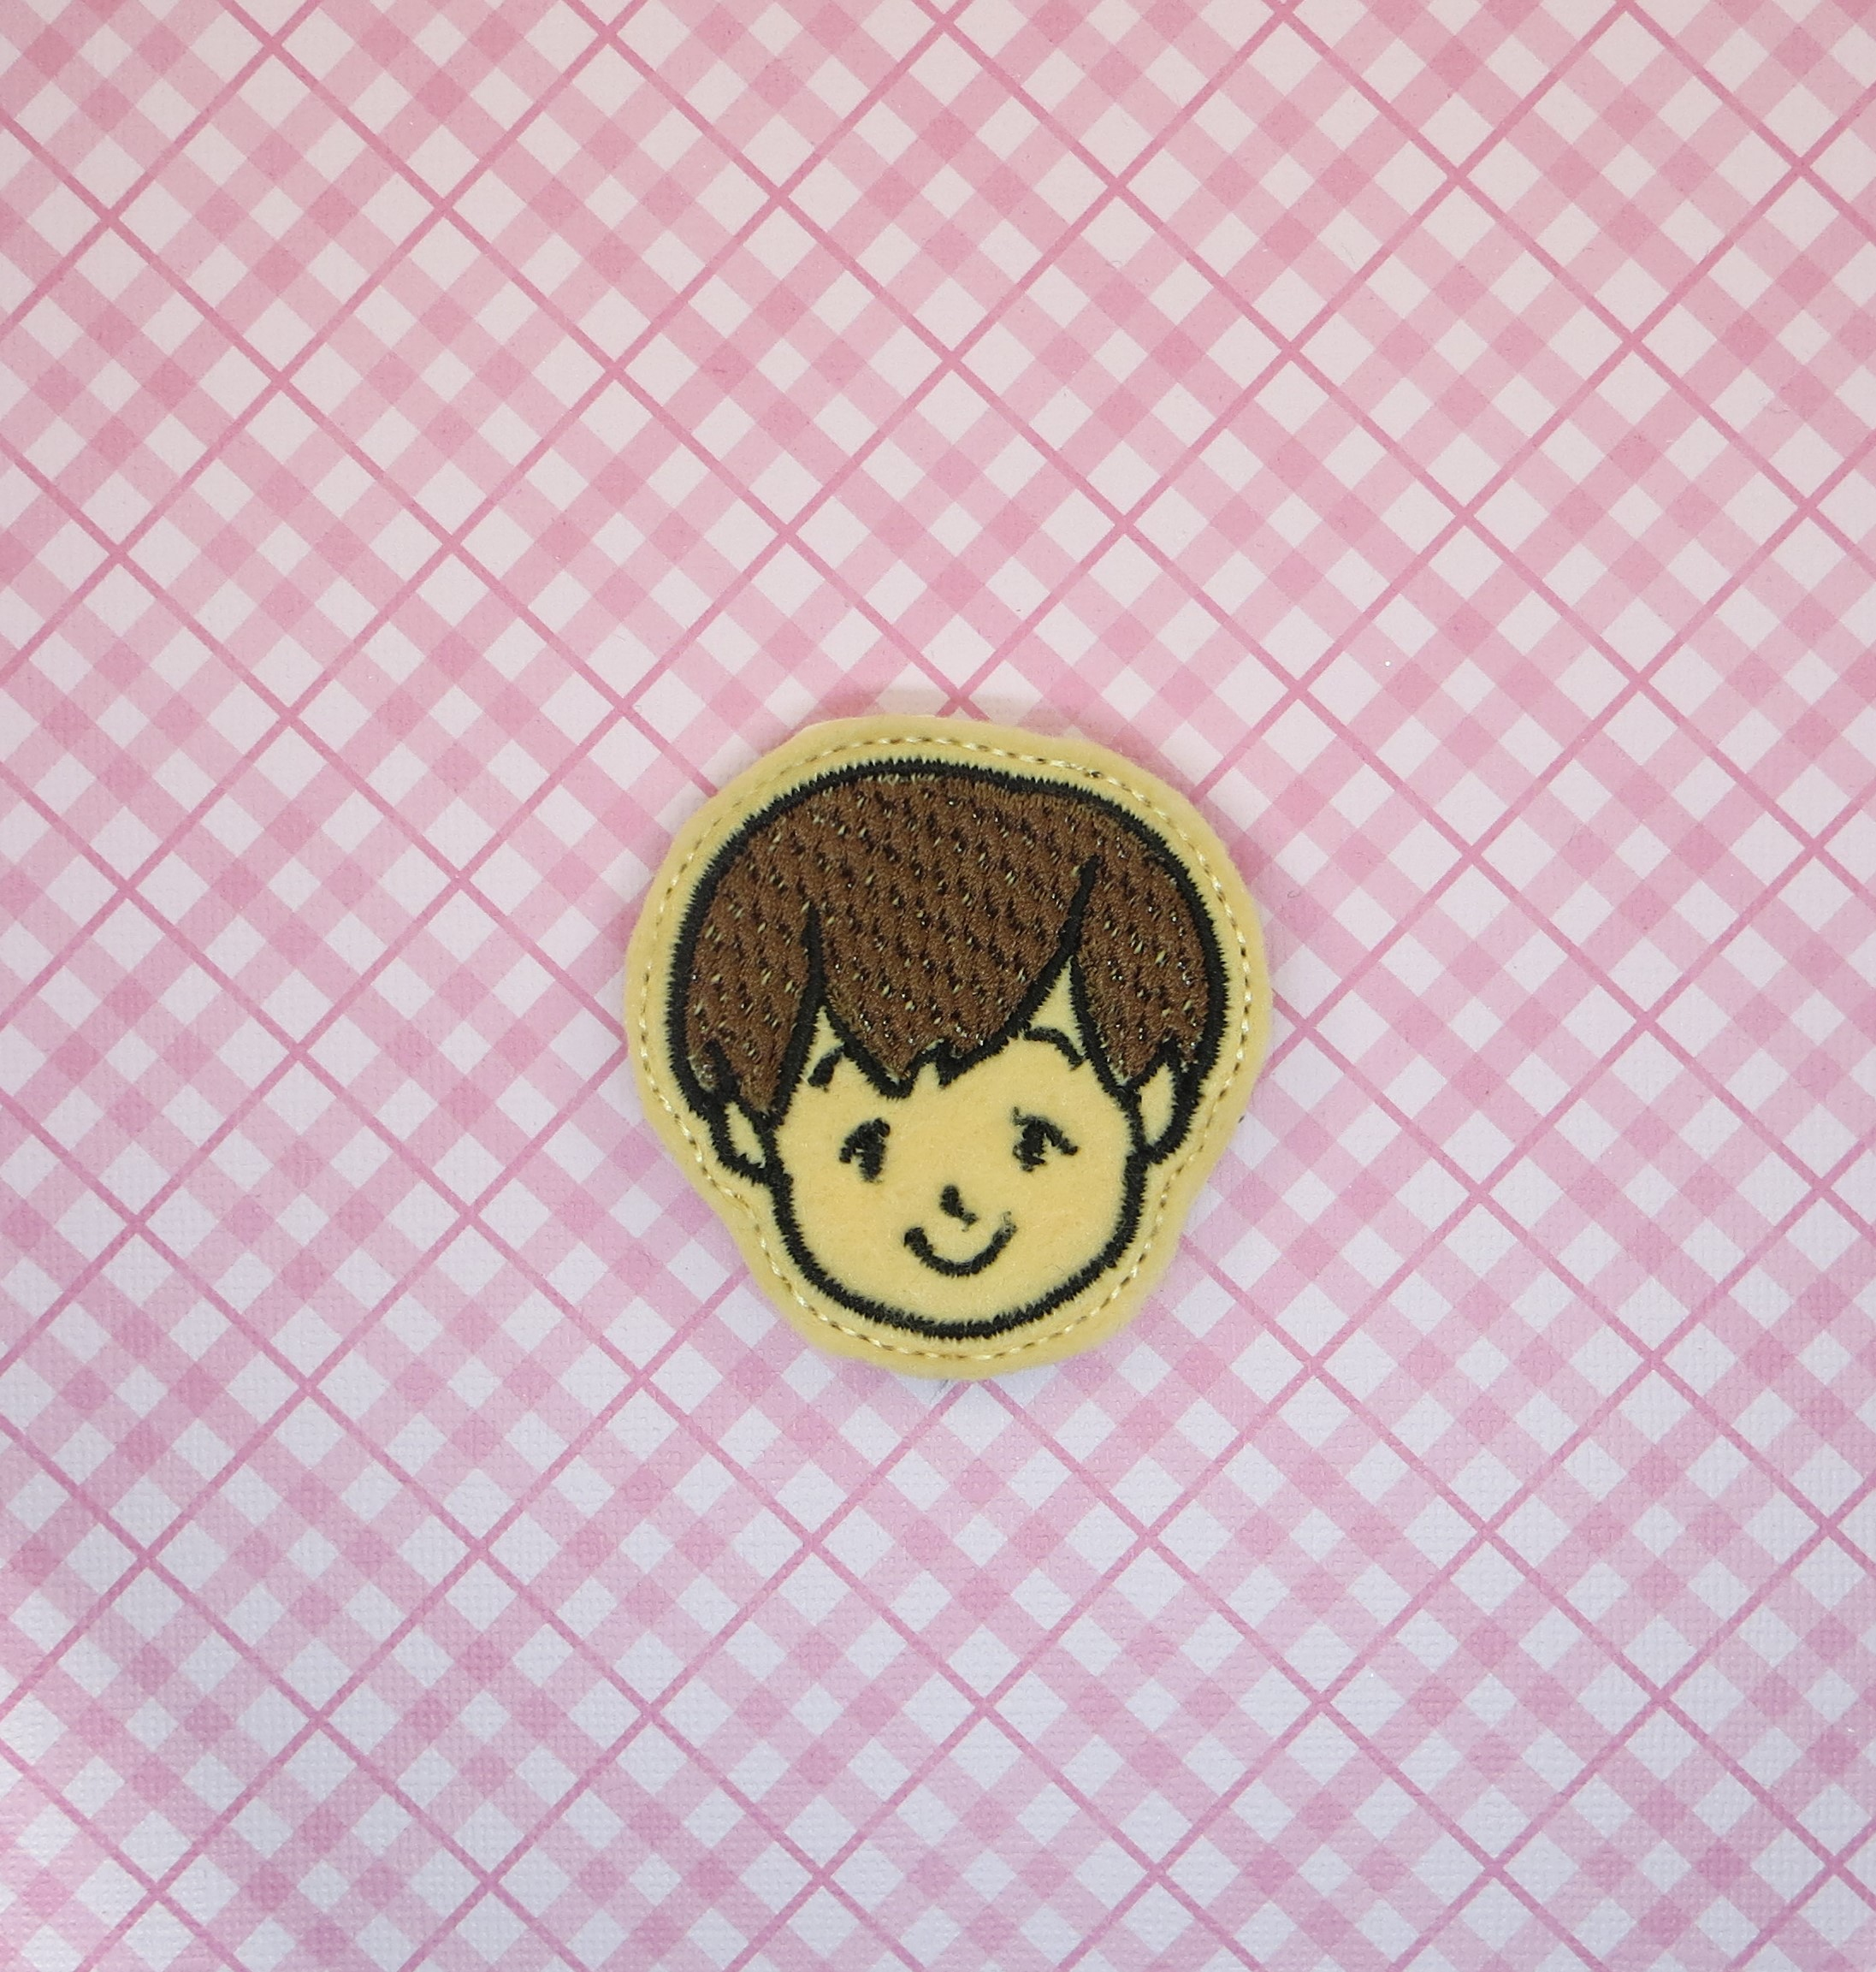 Christopher Robin Feltie Embroidery Design